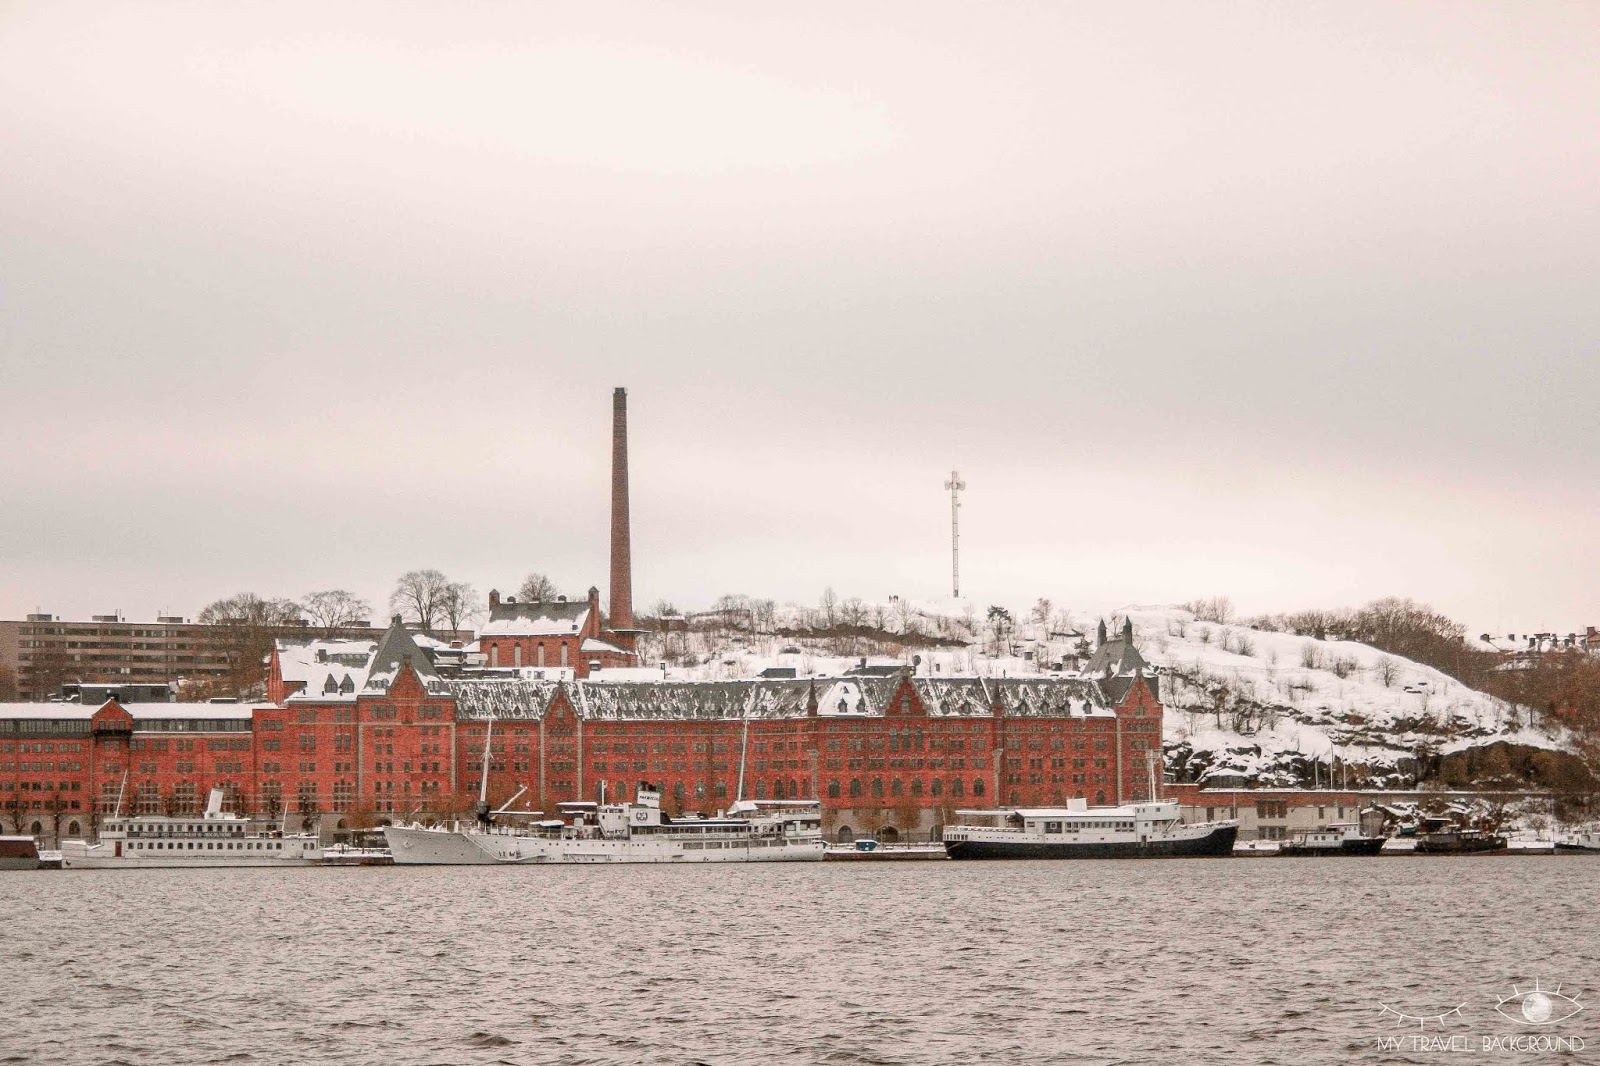 My Travel Background : photographier Stockholm : où trouver les plus belles vues ? - Sodermalm